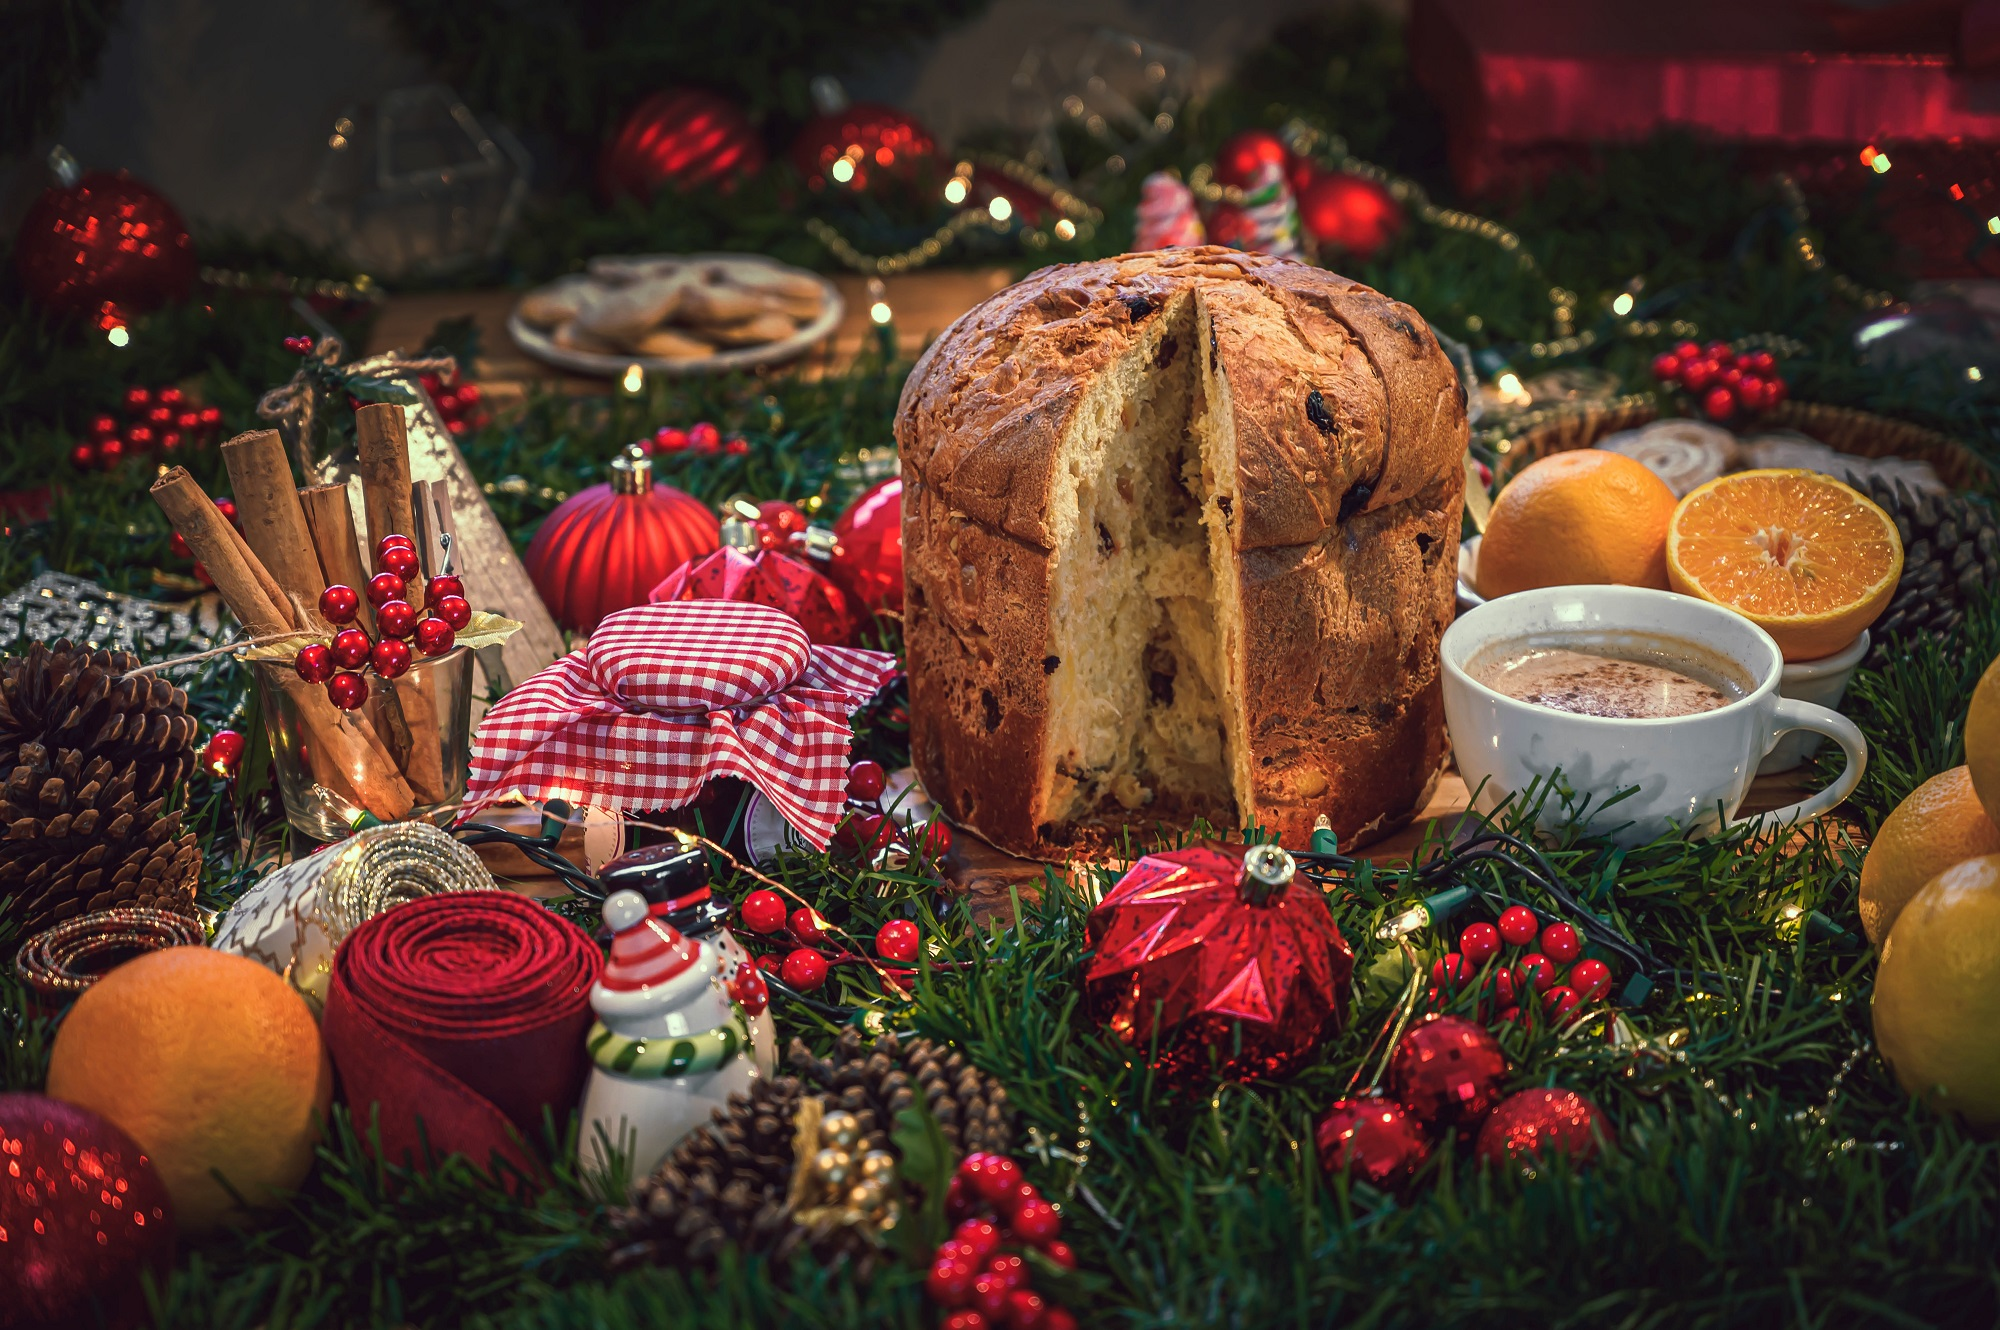 Christmas feast with panettone at the center